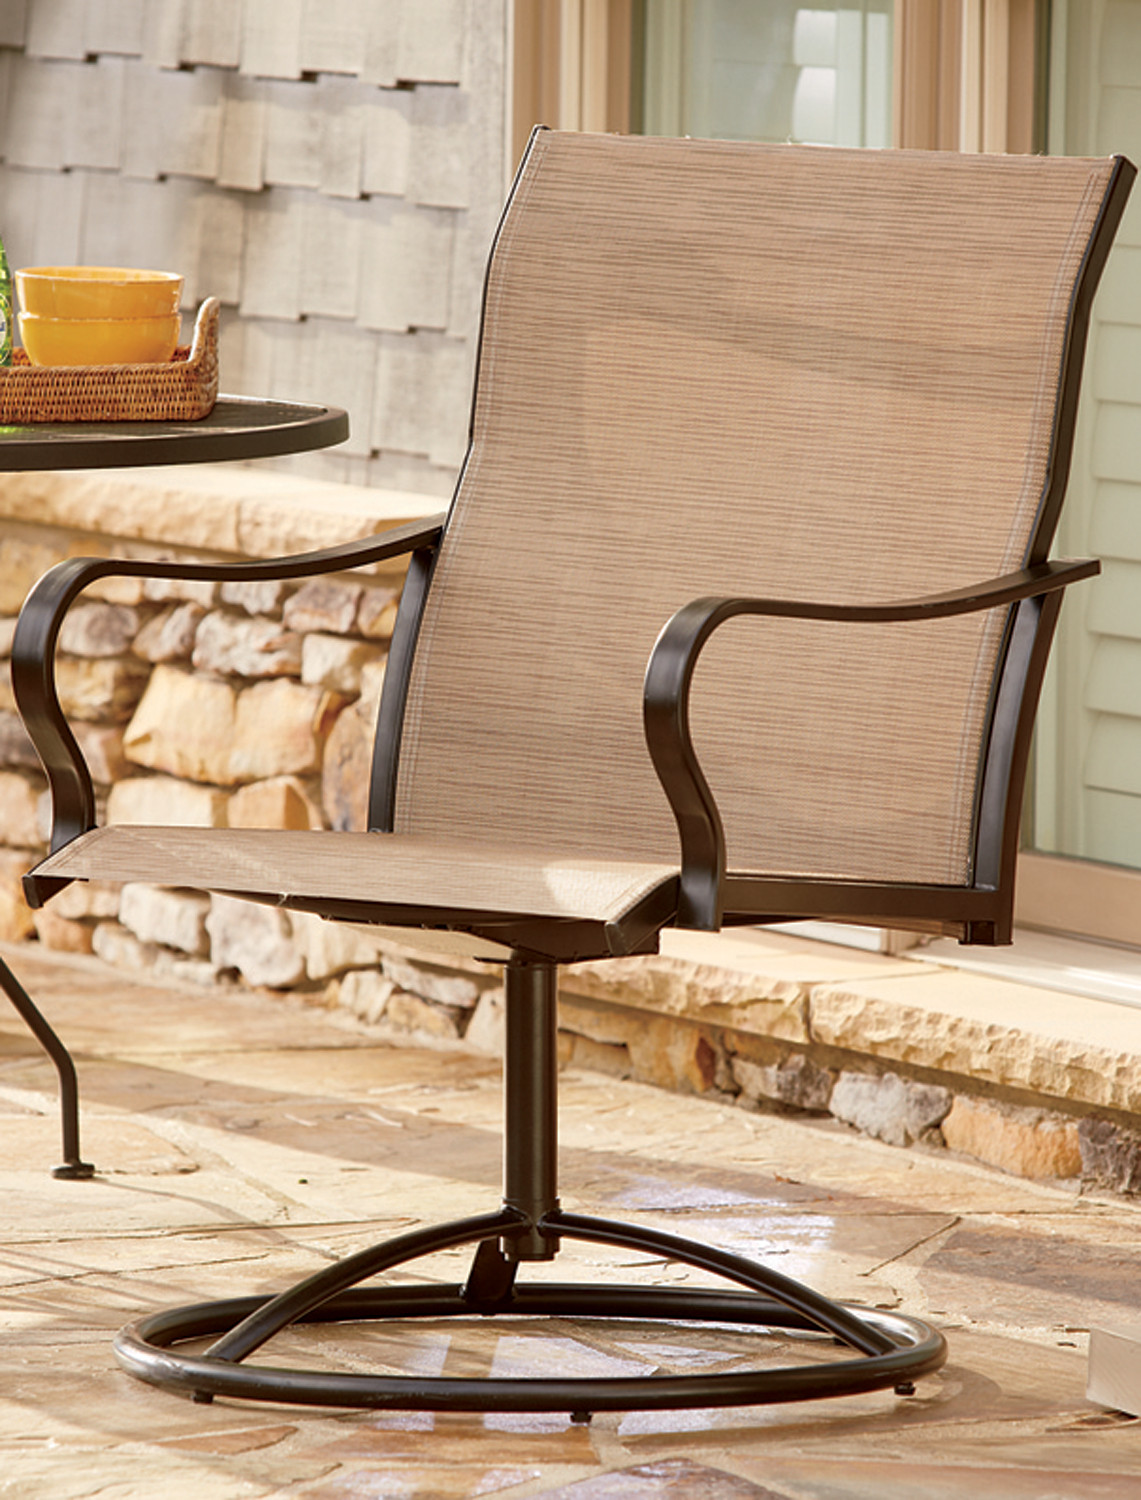 xl padded zero gravity chair with canopy rubber ends for legs solid | outdoor from destination